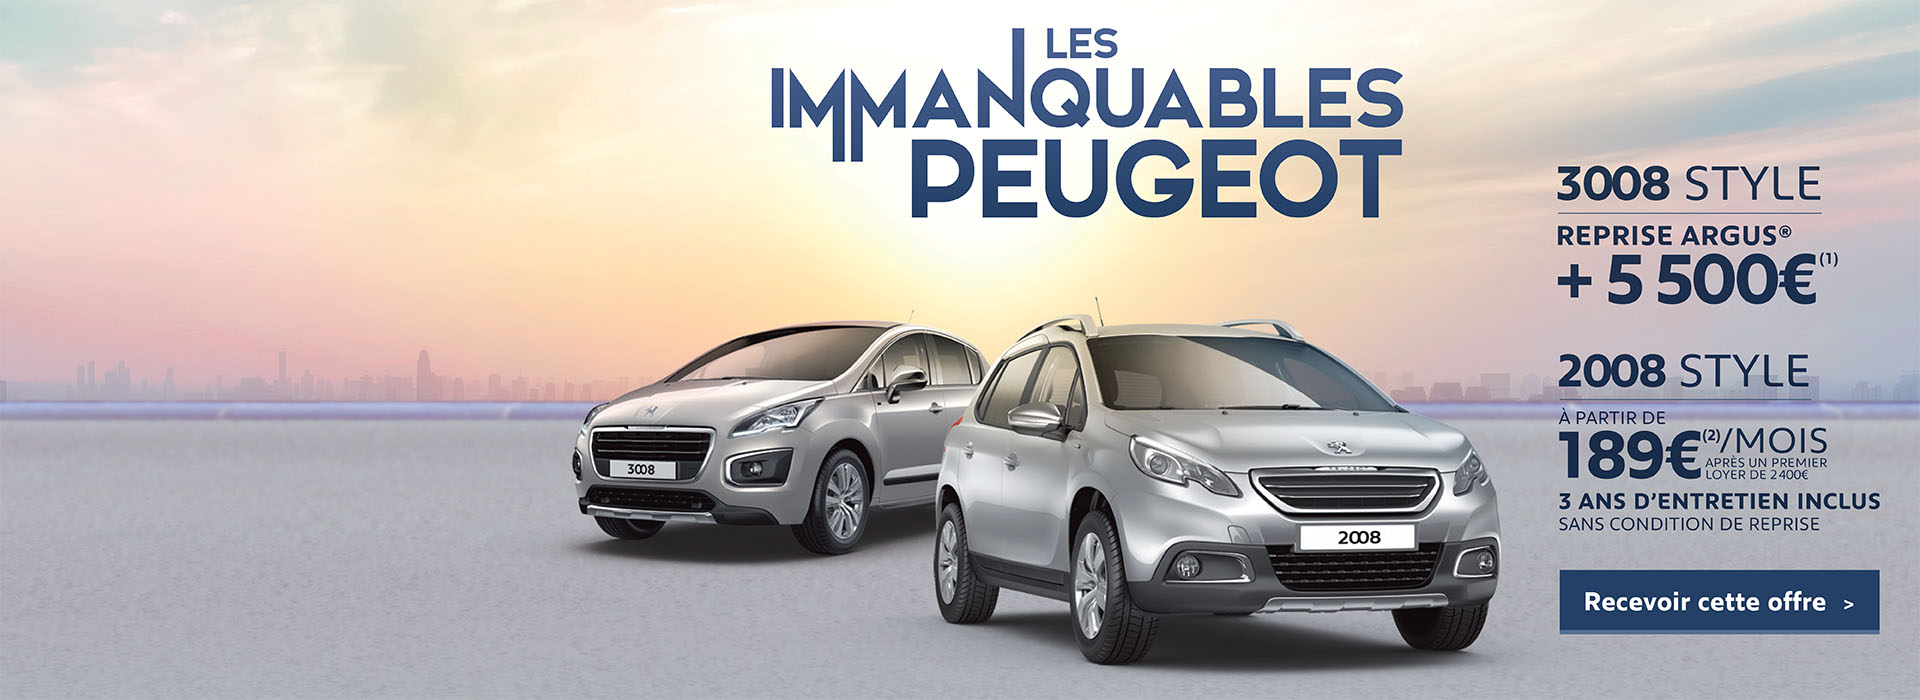 Peugeot reims vente voiture neuve vehicule occasion for Garage reims voiture occasion